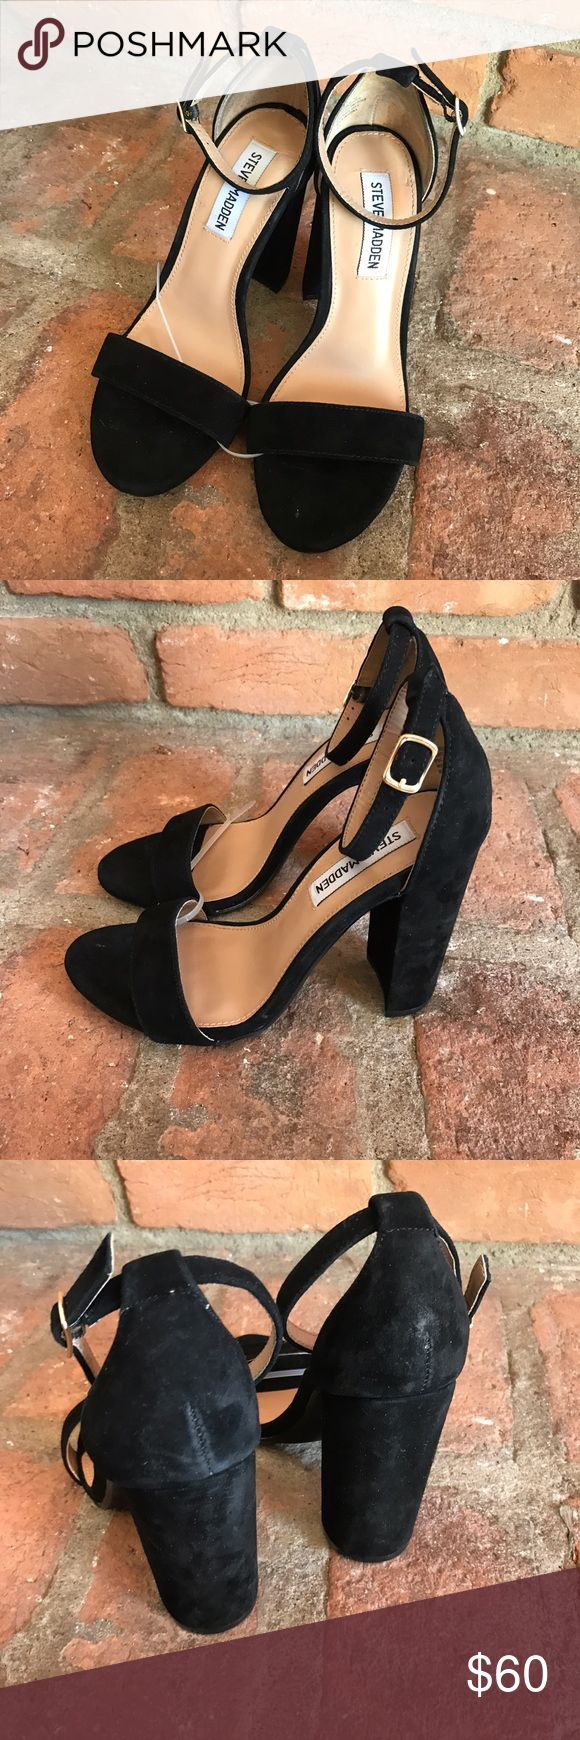 Steve Madden carrson block heels ❗️ In excellent condition super clean inside and out bottoms have a little dirt! Feel free to ask any questions Steve Madden Shoes Heels